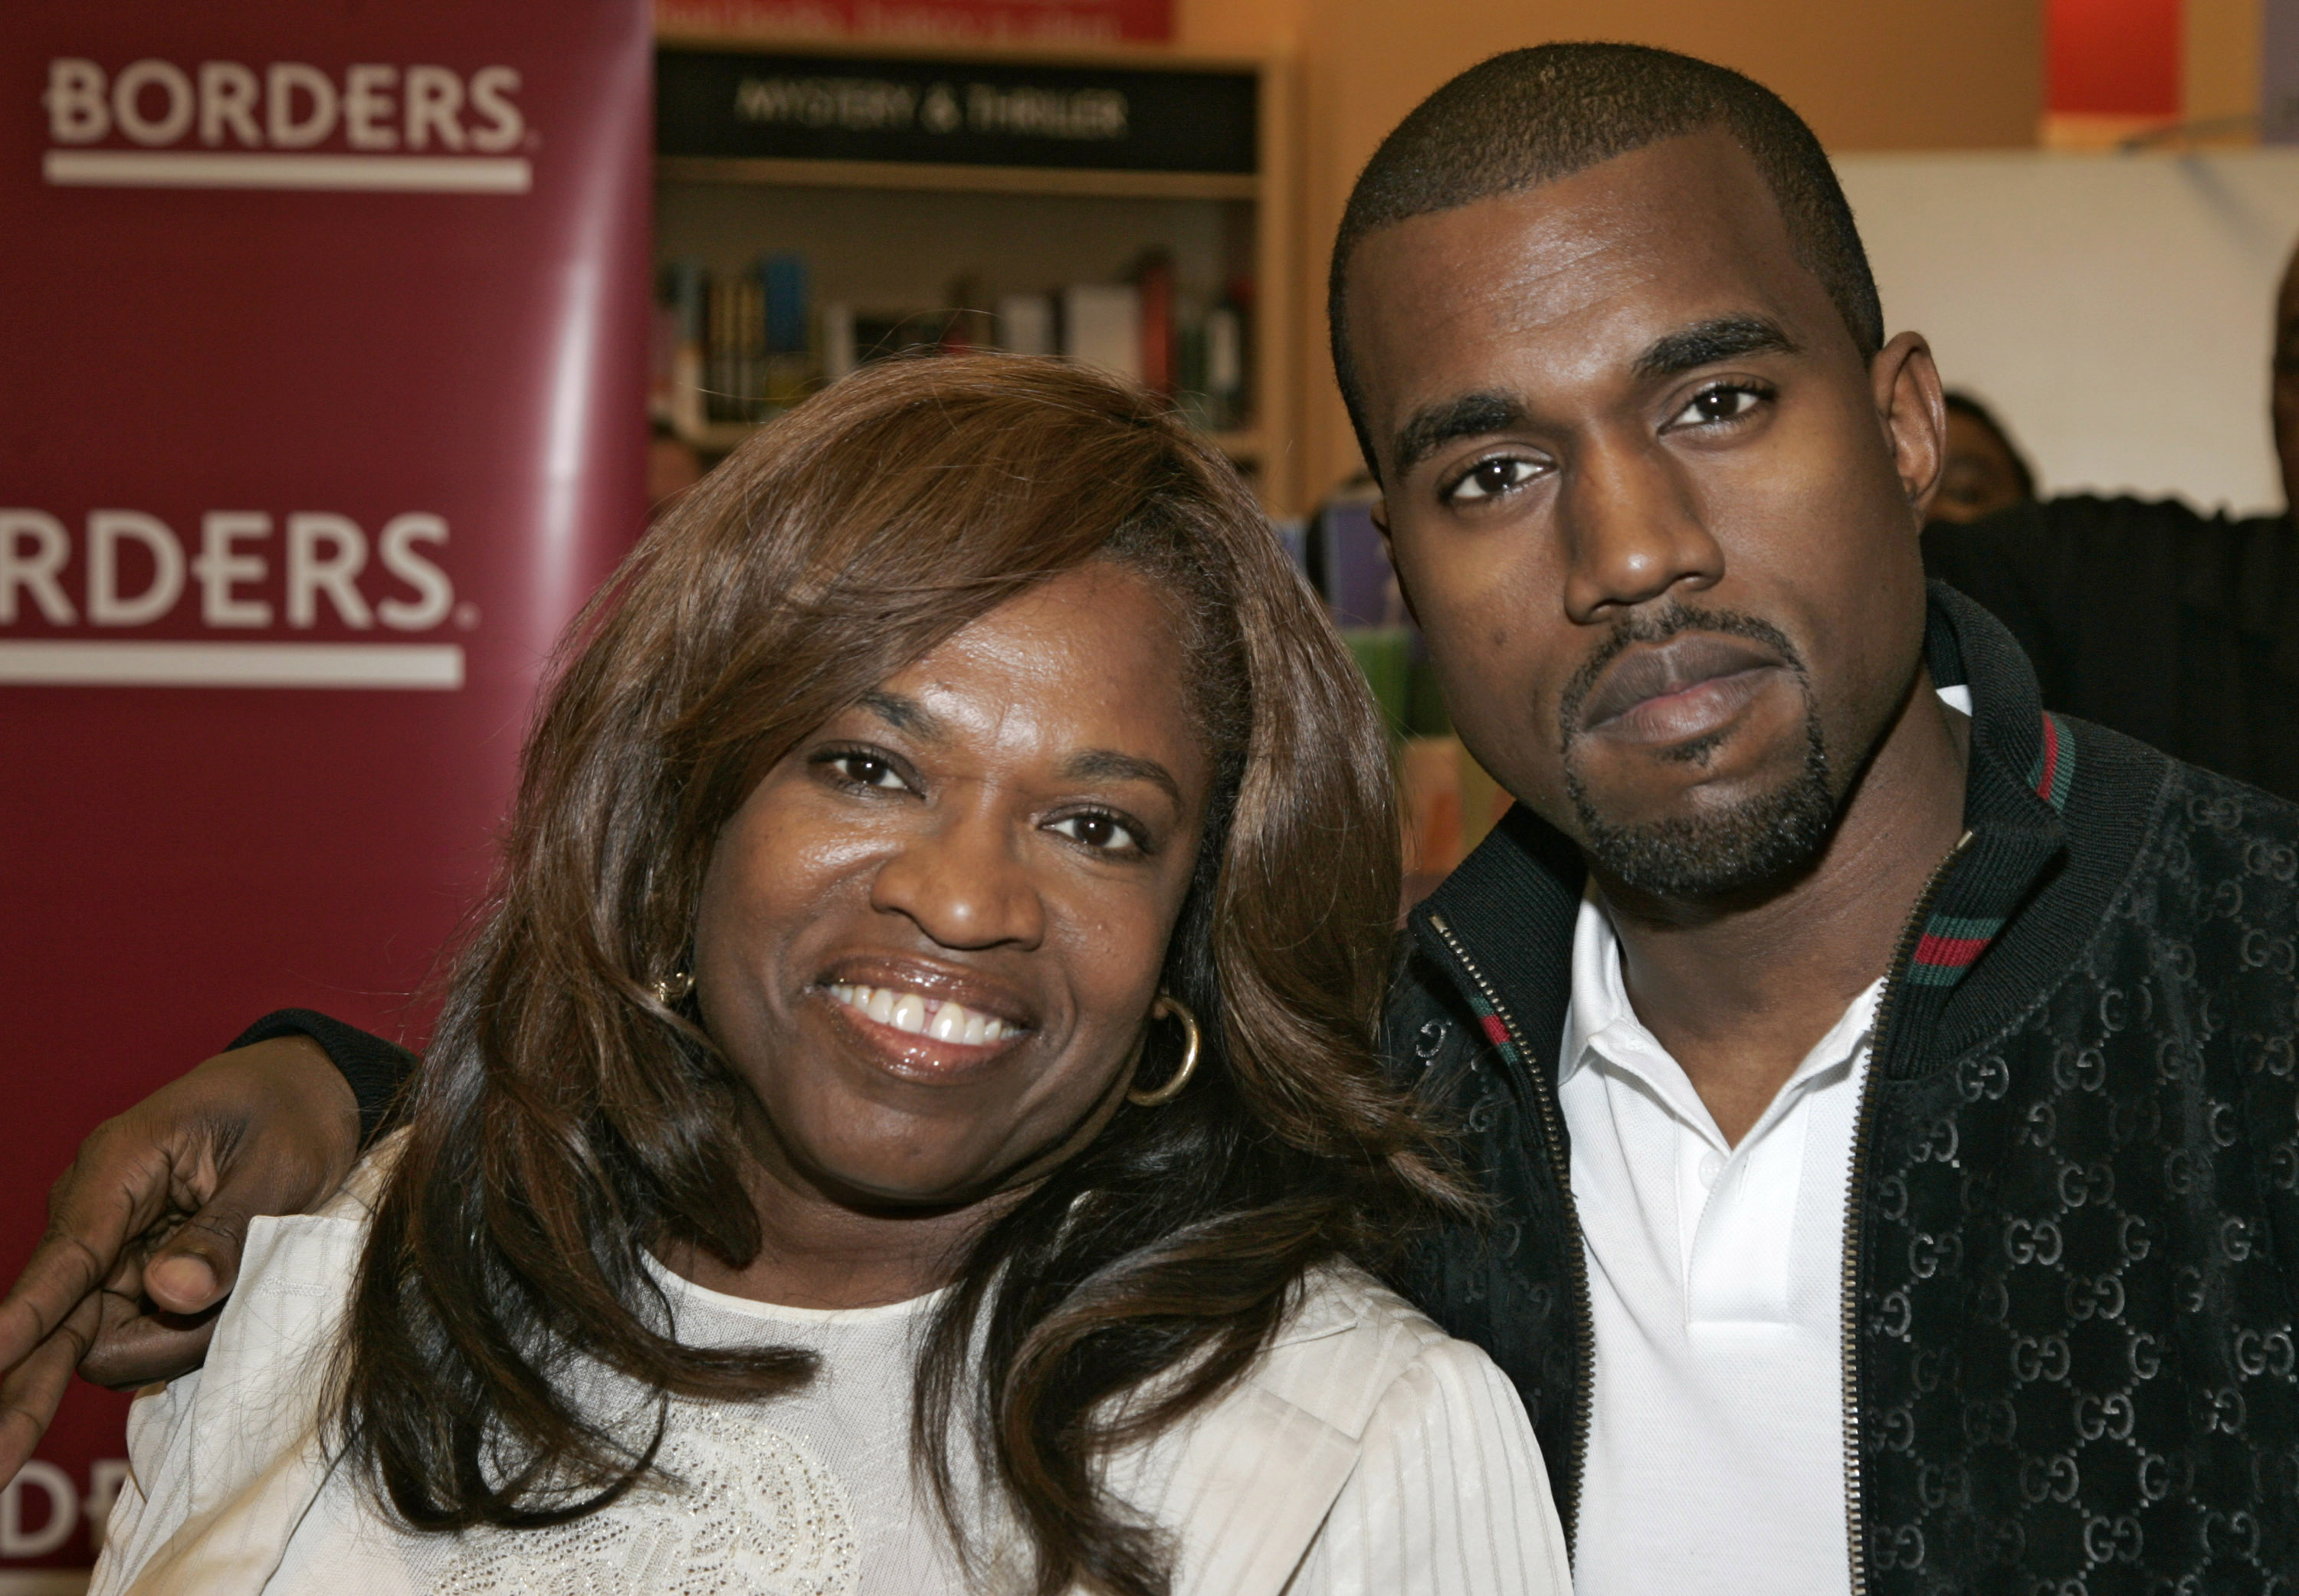 Donda West Signs Copies of Her New Book, 'Raising Kanye' - June 6, 2007